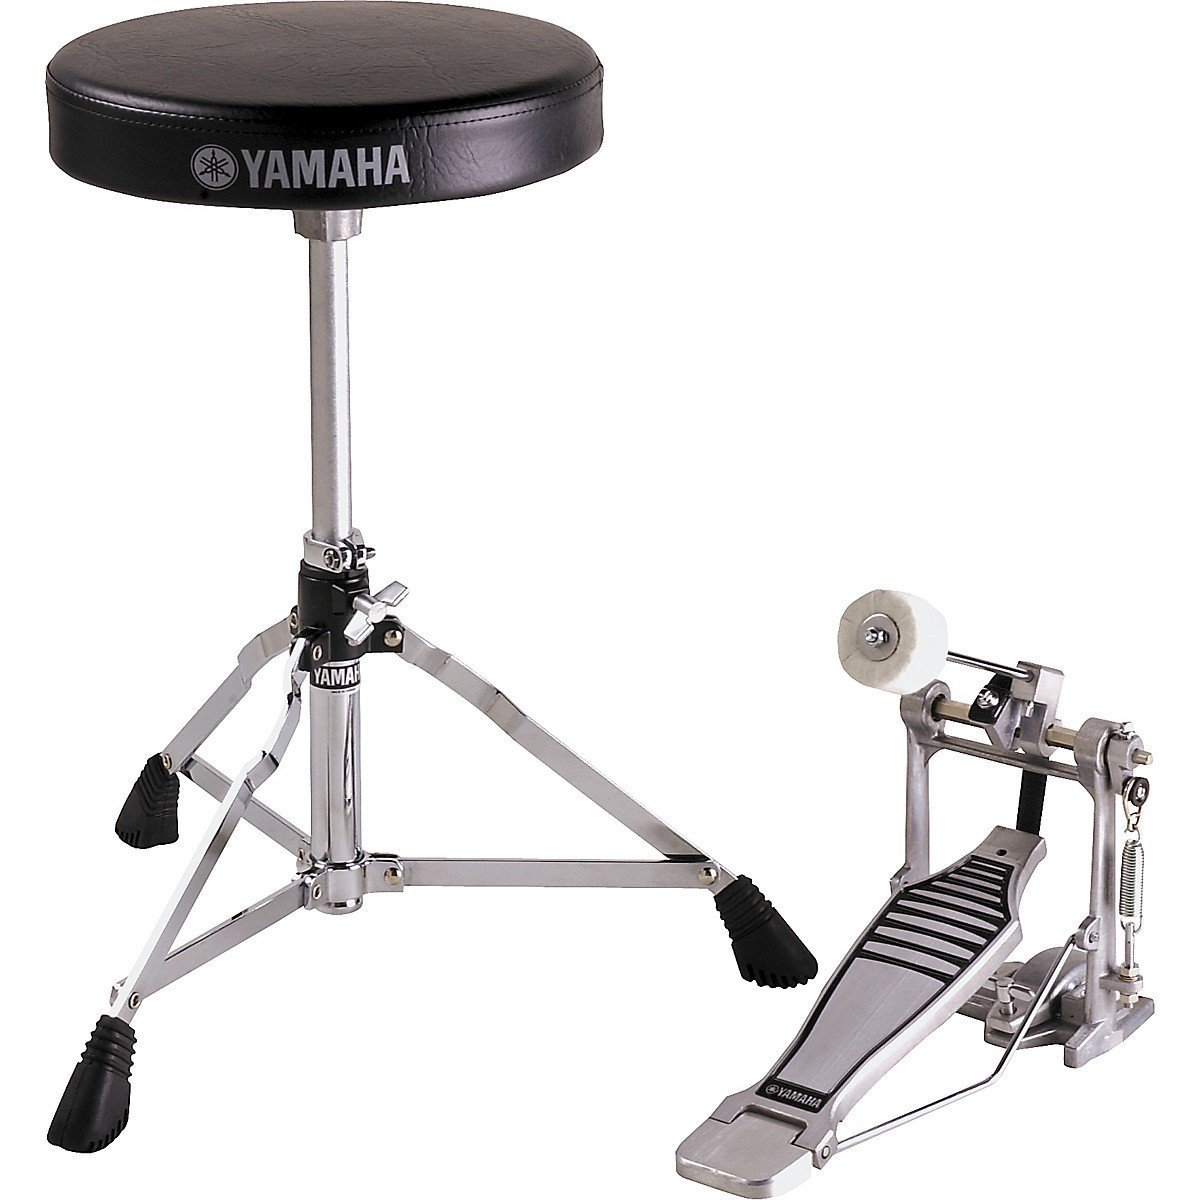 Yamaha FP-6110A and DS-550; Foot Pedal and Drum Throne PKG by Yamaha (Image #1)